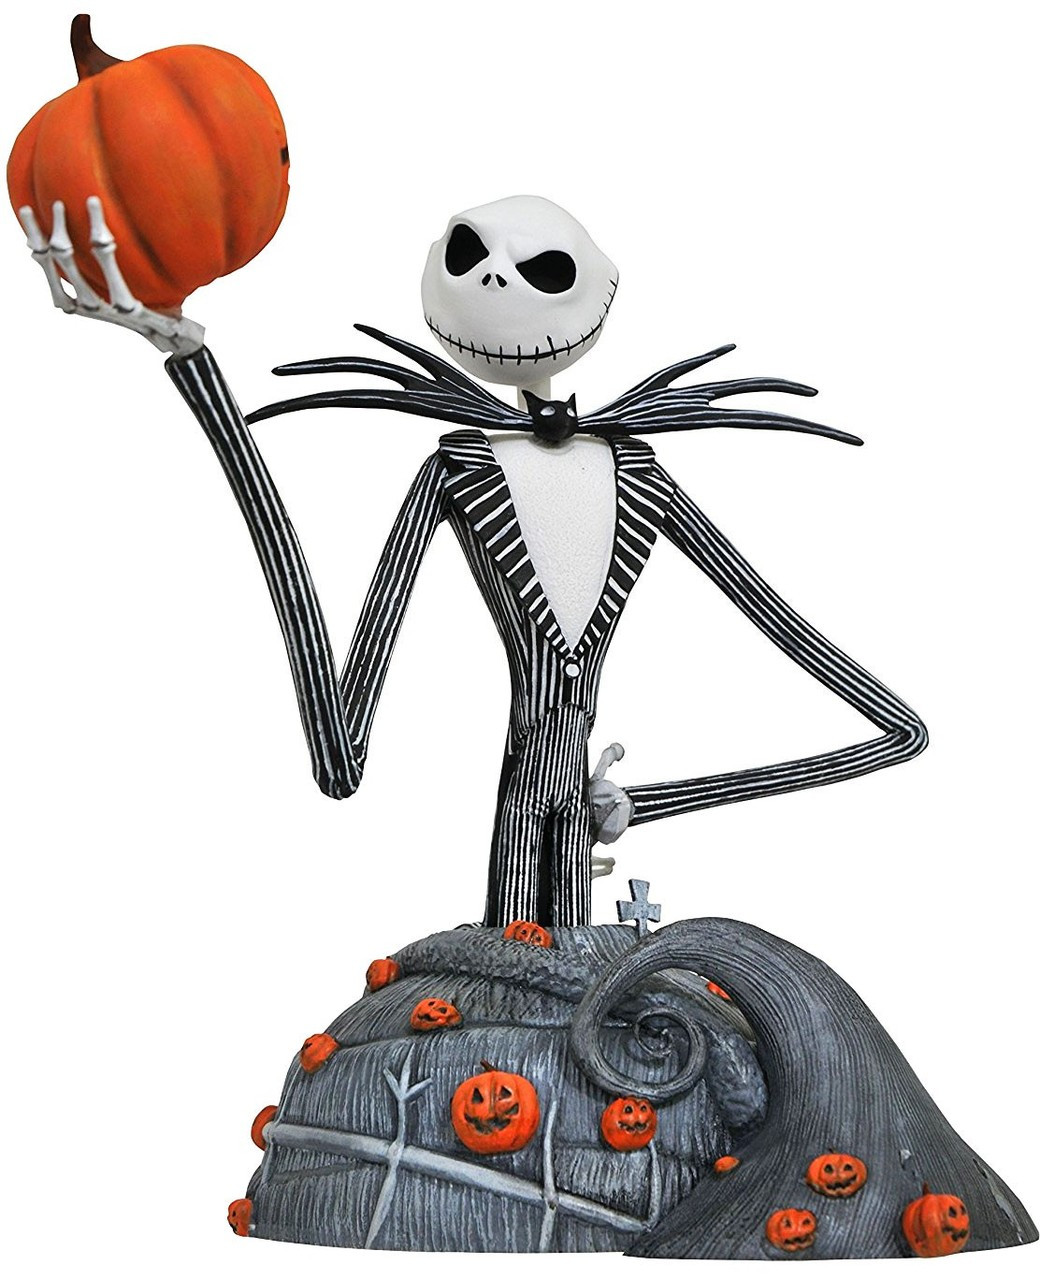 nightmare before christmas jack skellington bust - Christmas Jack Skellington